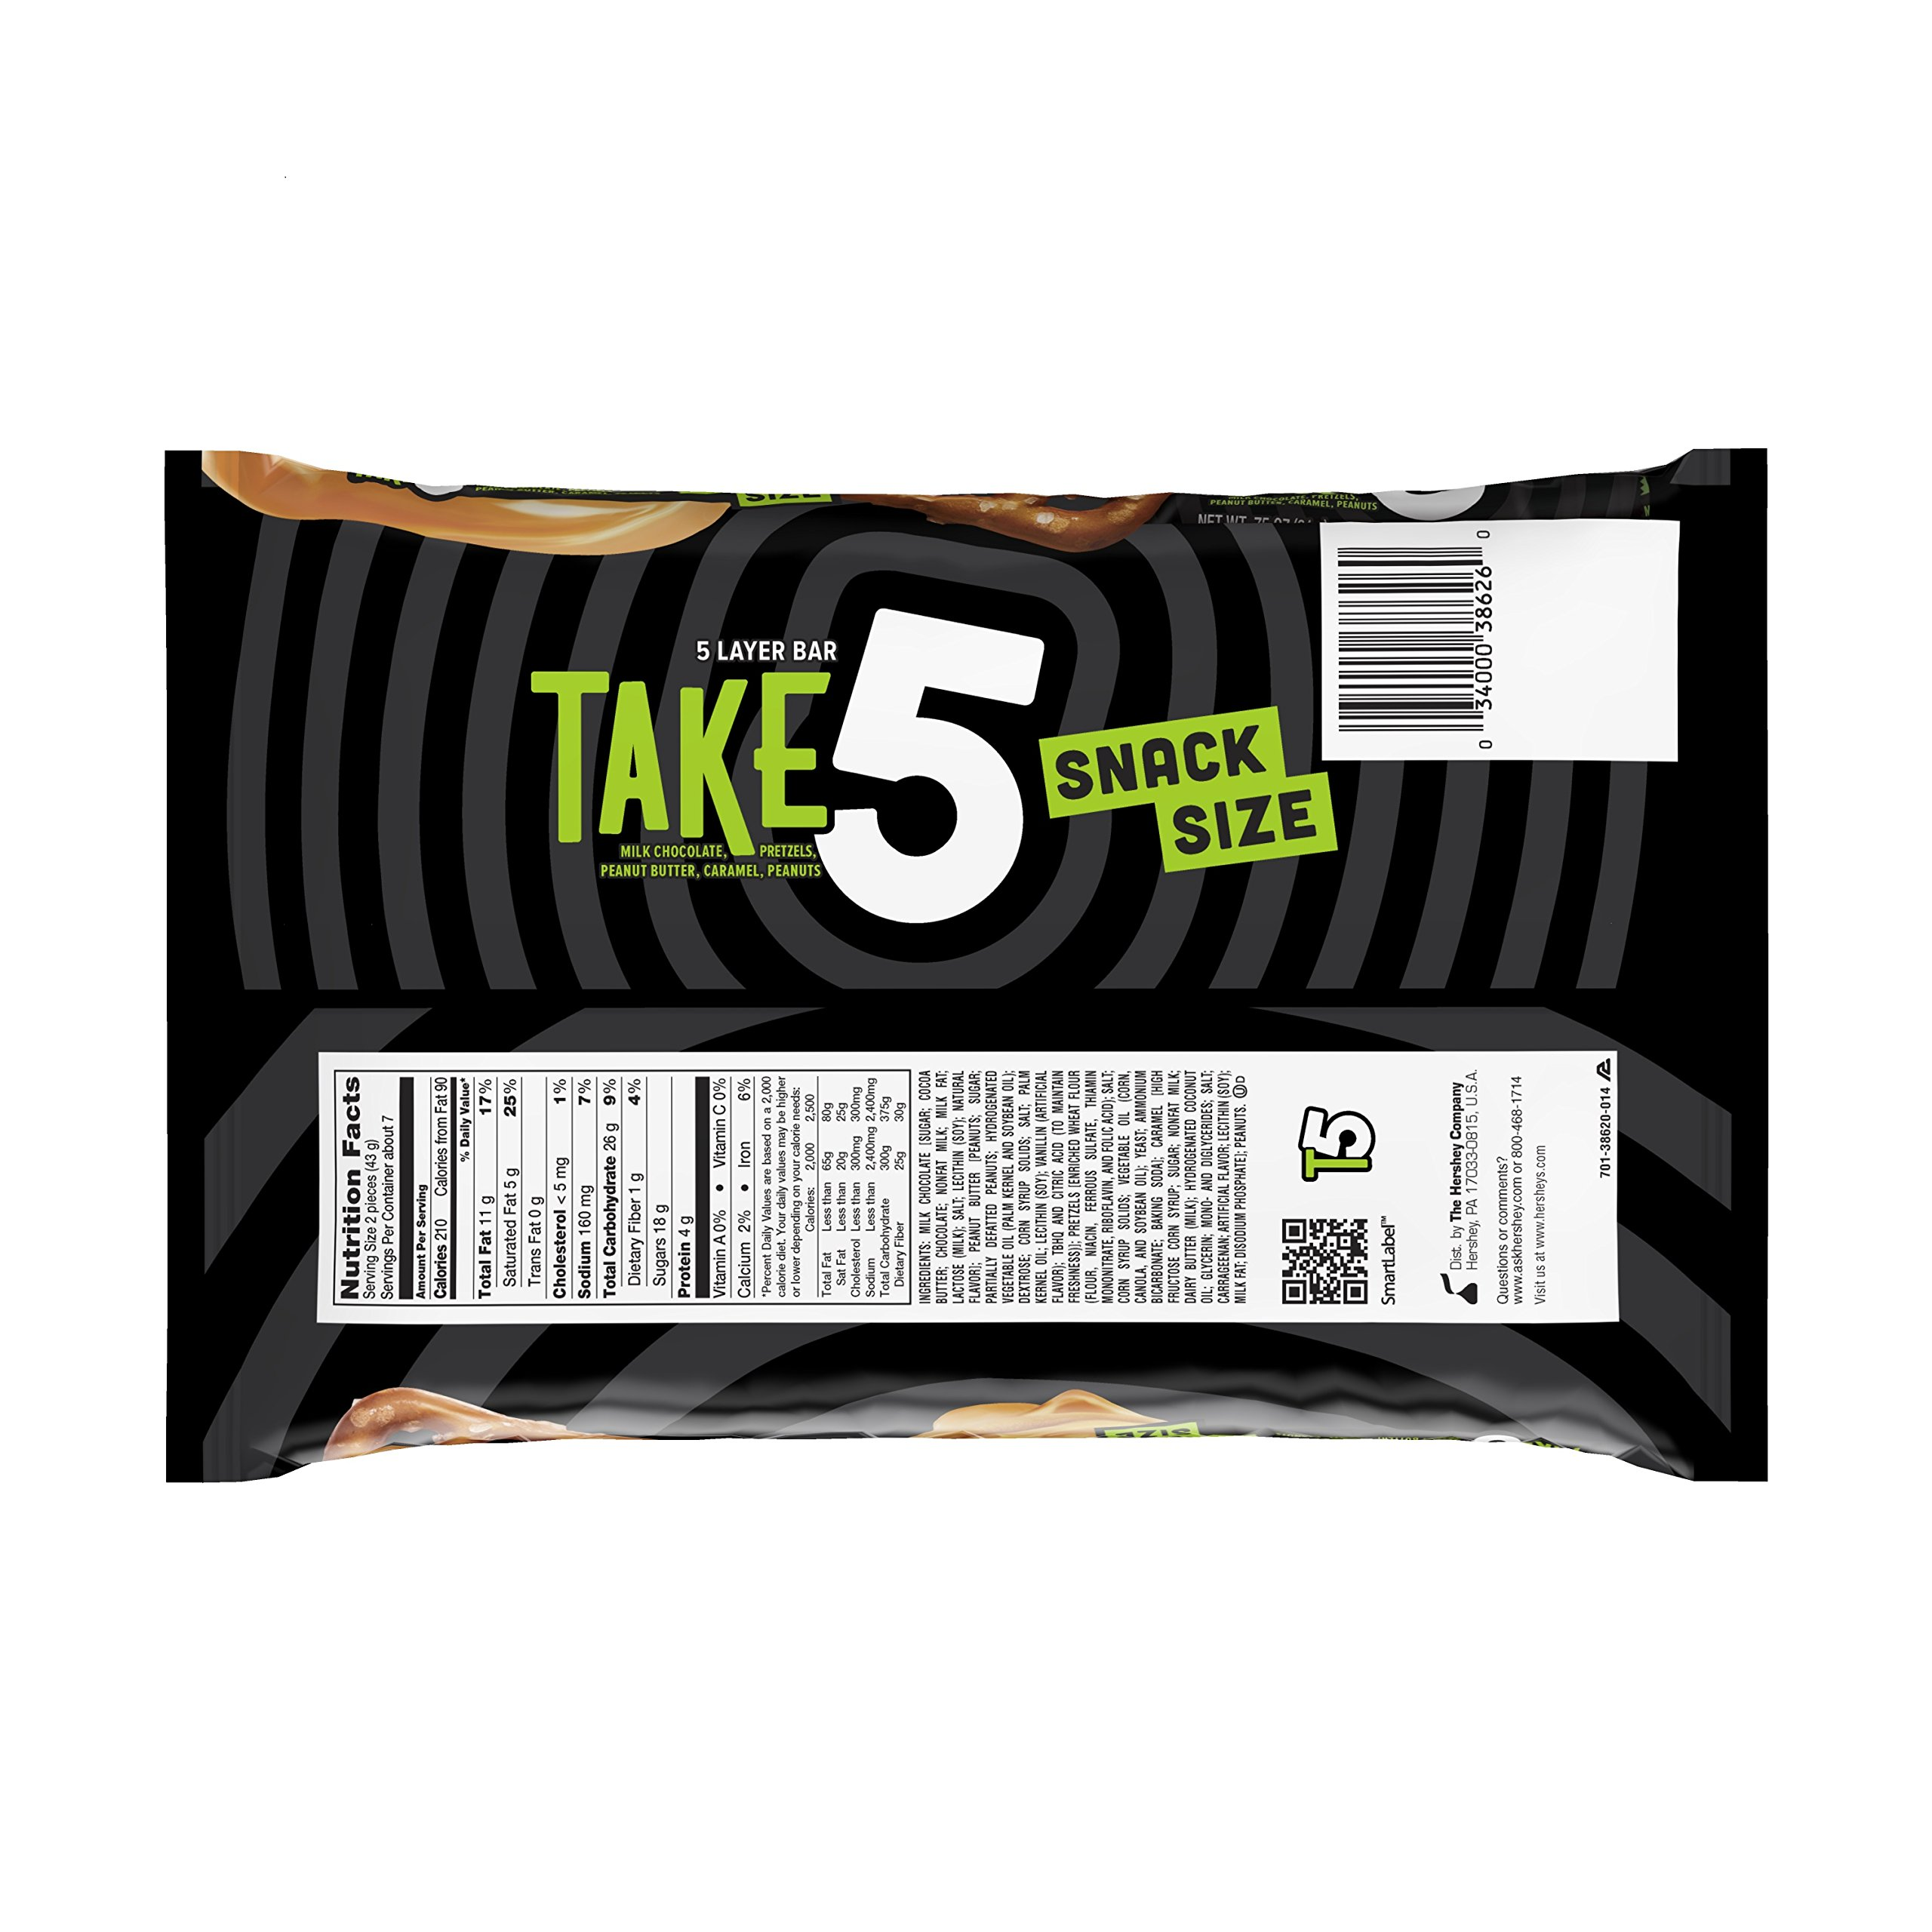 TAKE5 Snack Size Bars (11.25-Ounce Bag, Pack of 6) by Take 5 (Image #4)